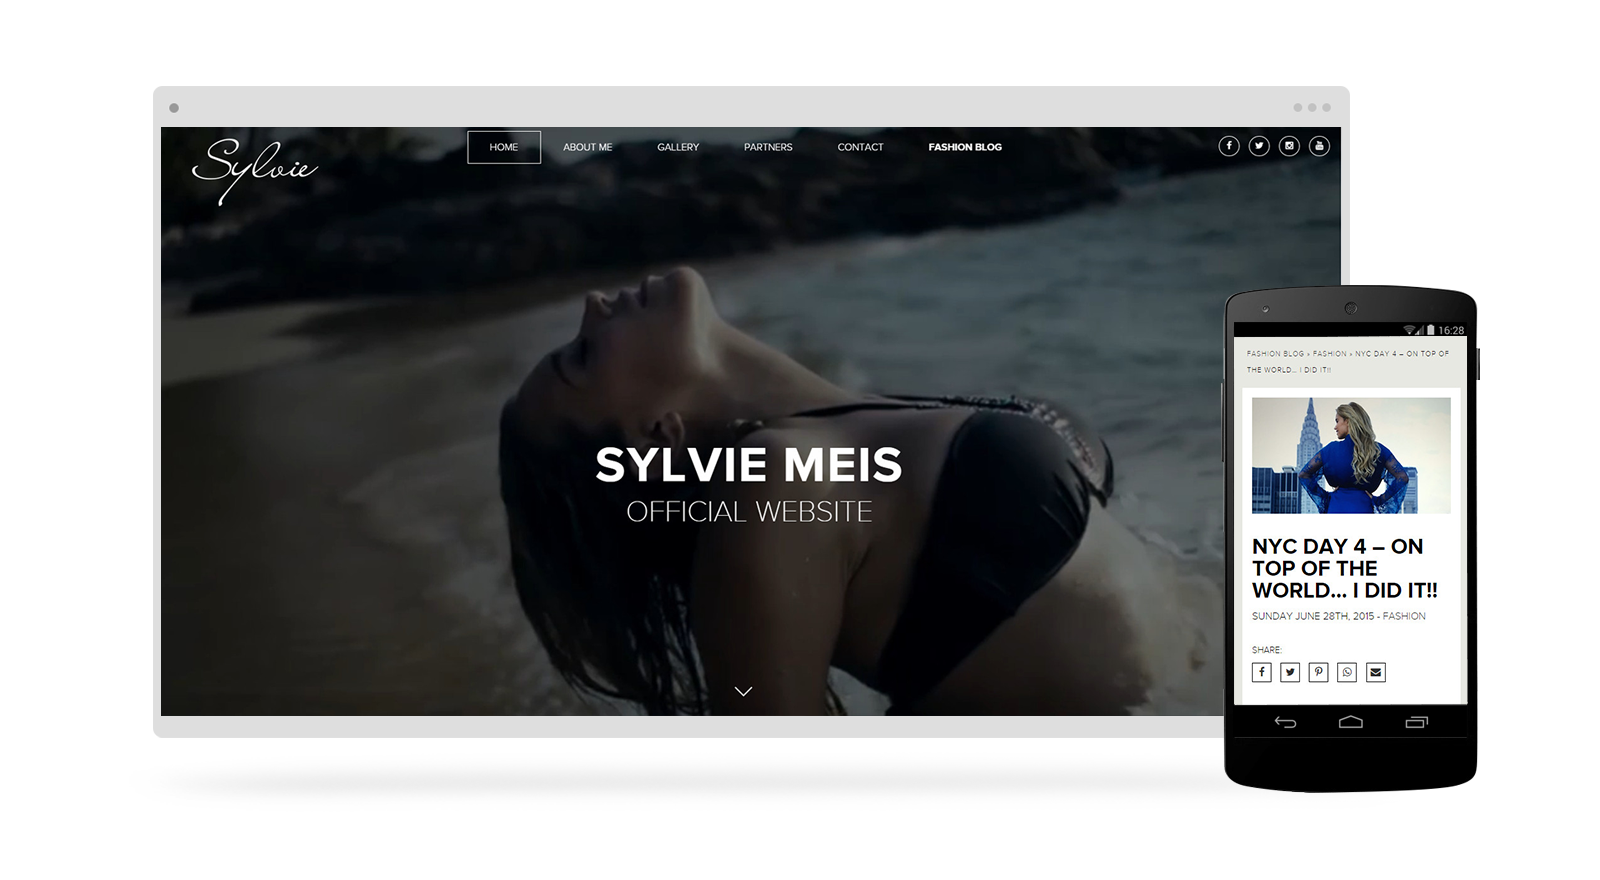 Sylvie Meis official Website - Webdesign by RESIGN